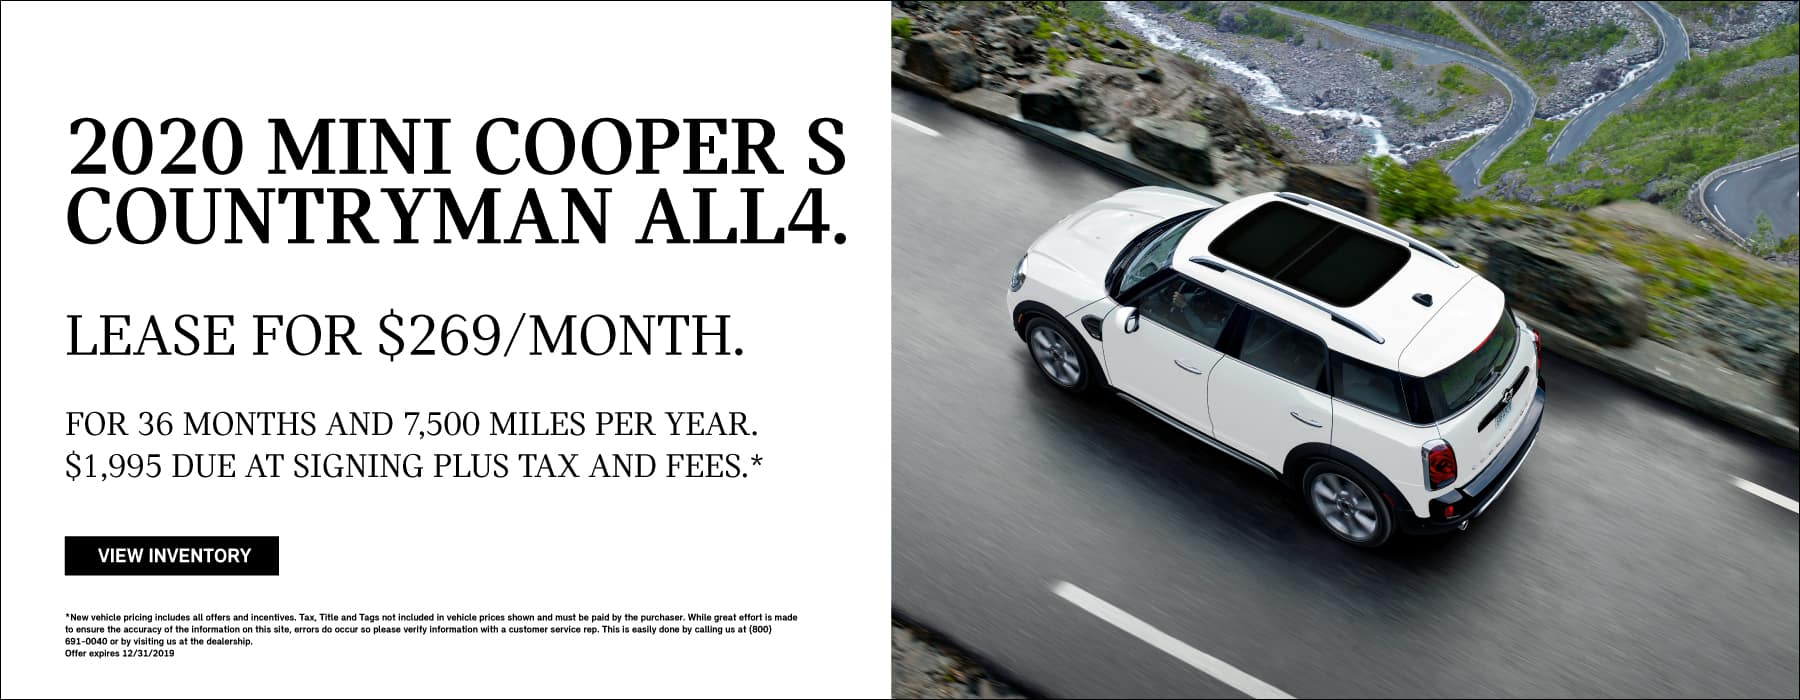 2020 MINI COOPER S  COUNTRYMAN ALL4. LEASE FOR $269/MONTH. FOR 36 MONTHS AND 7,500 MILES PER YEAR.  $1,995 DUE AT SIGNING PLUS TAX AND FEES.**New vehicle pricing includes all offers and incentives. Tax, Title and Tags not included in vehicle prices shown and must be paid by the purchaser. While great effort is made to ensure the accuracy of the information on this site, errors do occur so please verify information with a customer service rep. This is easily done by calling us at (800) 691-0040 or by visiting us at the dealership. Offer expires 12/31/2019